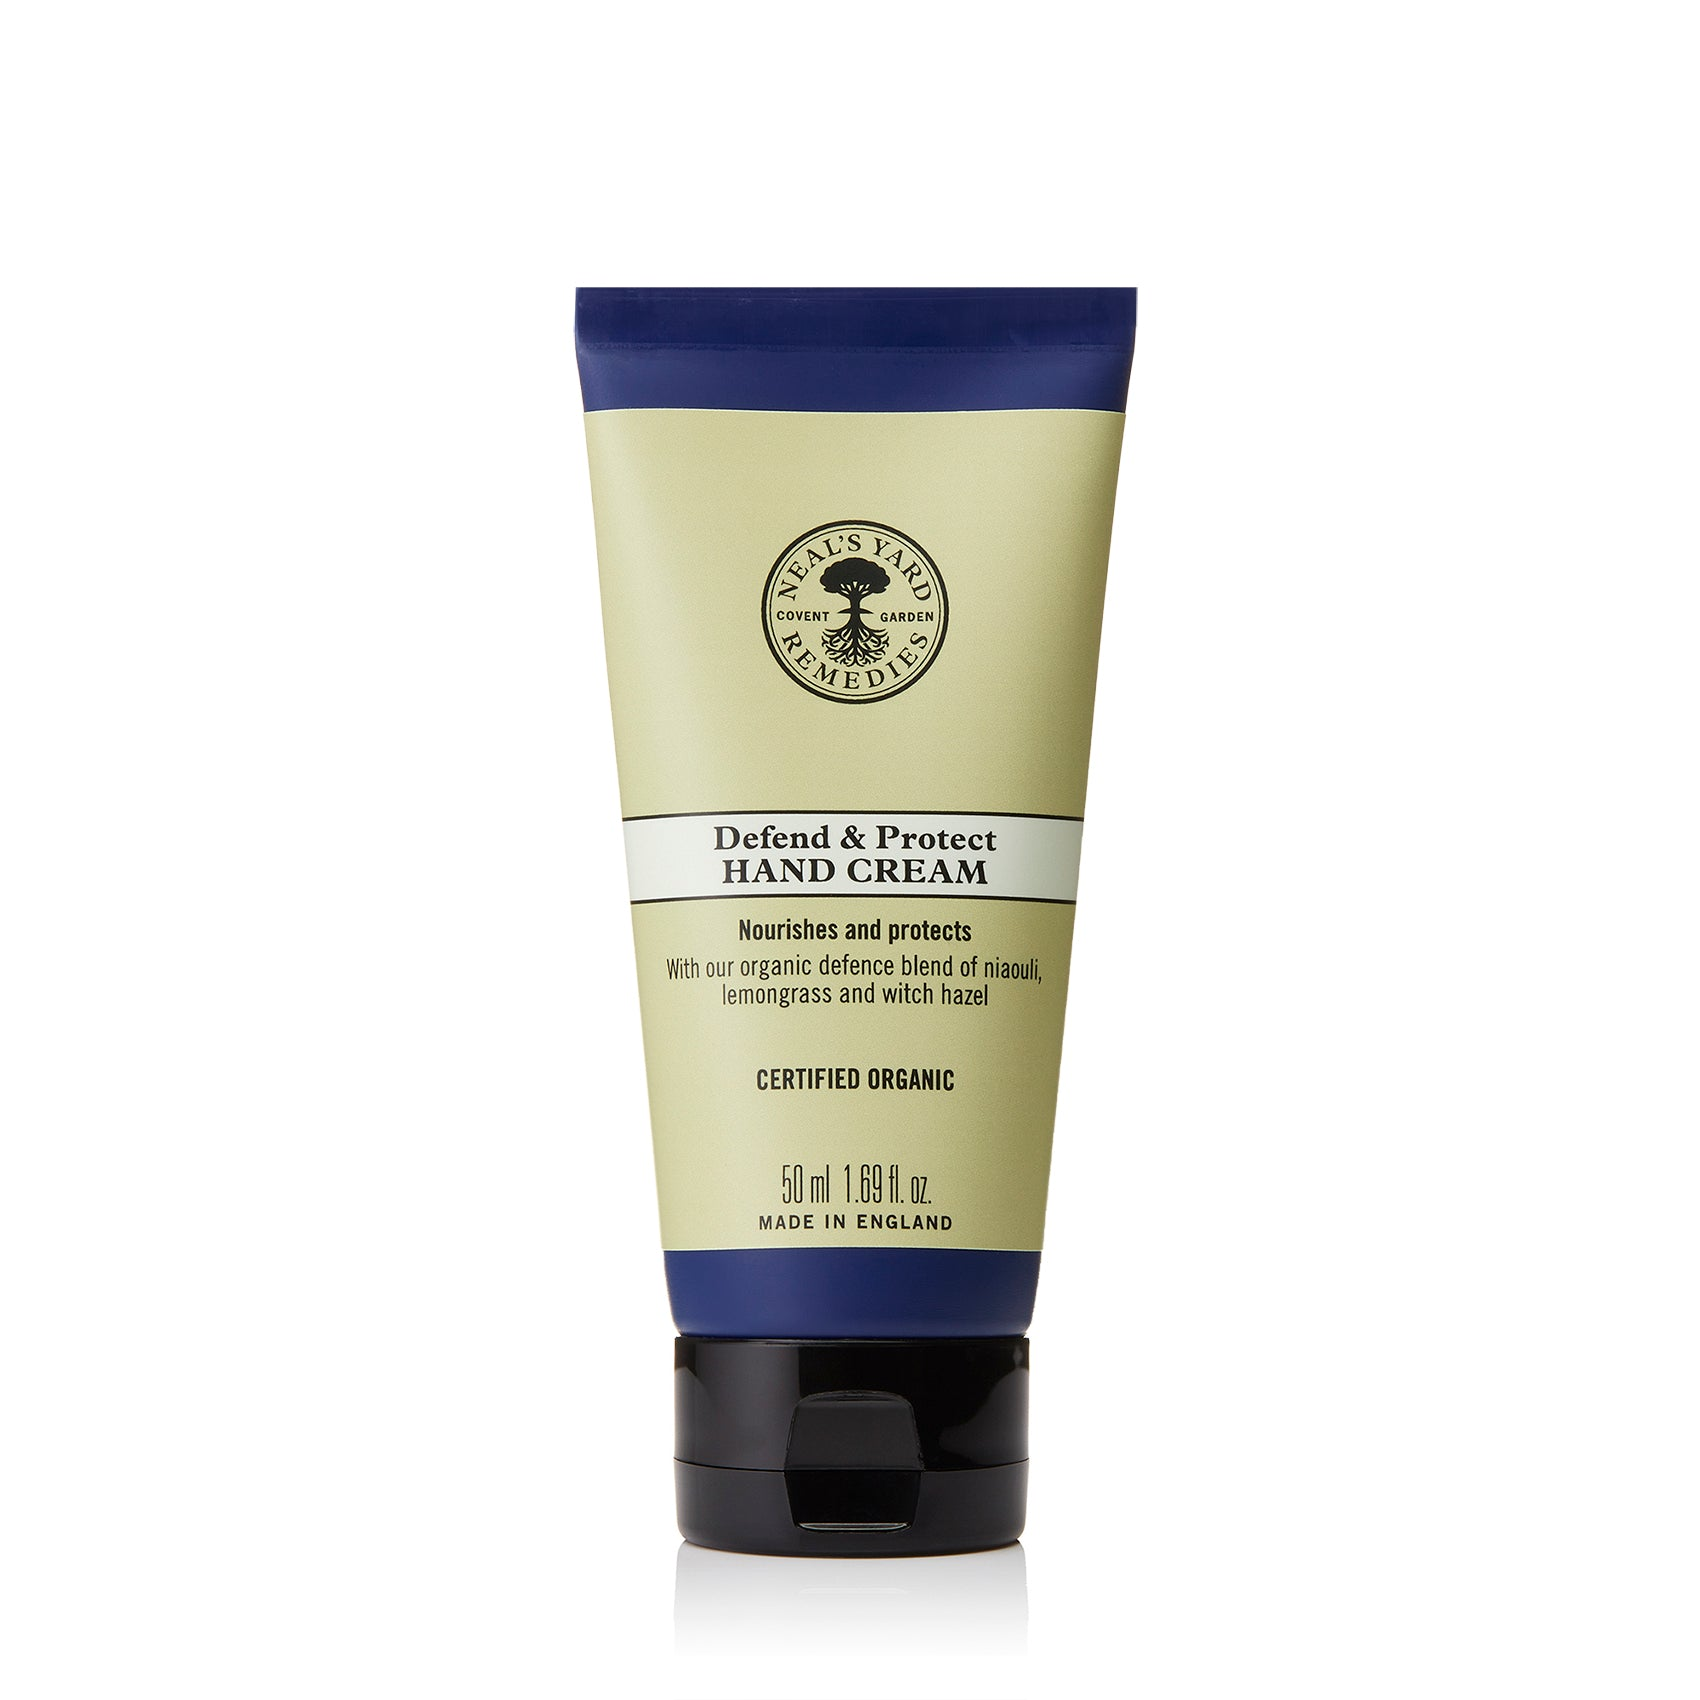 Defend & Protect Hand Cream 1.69fl.oz